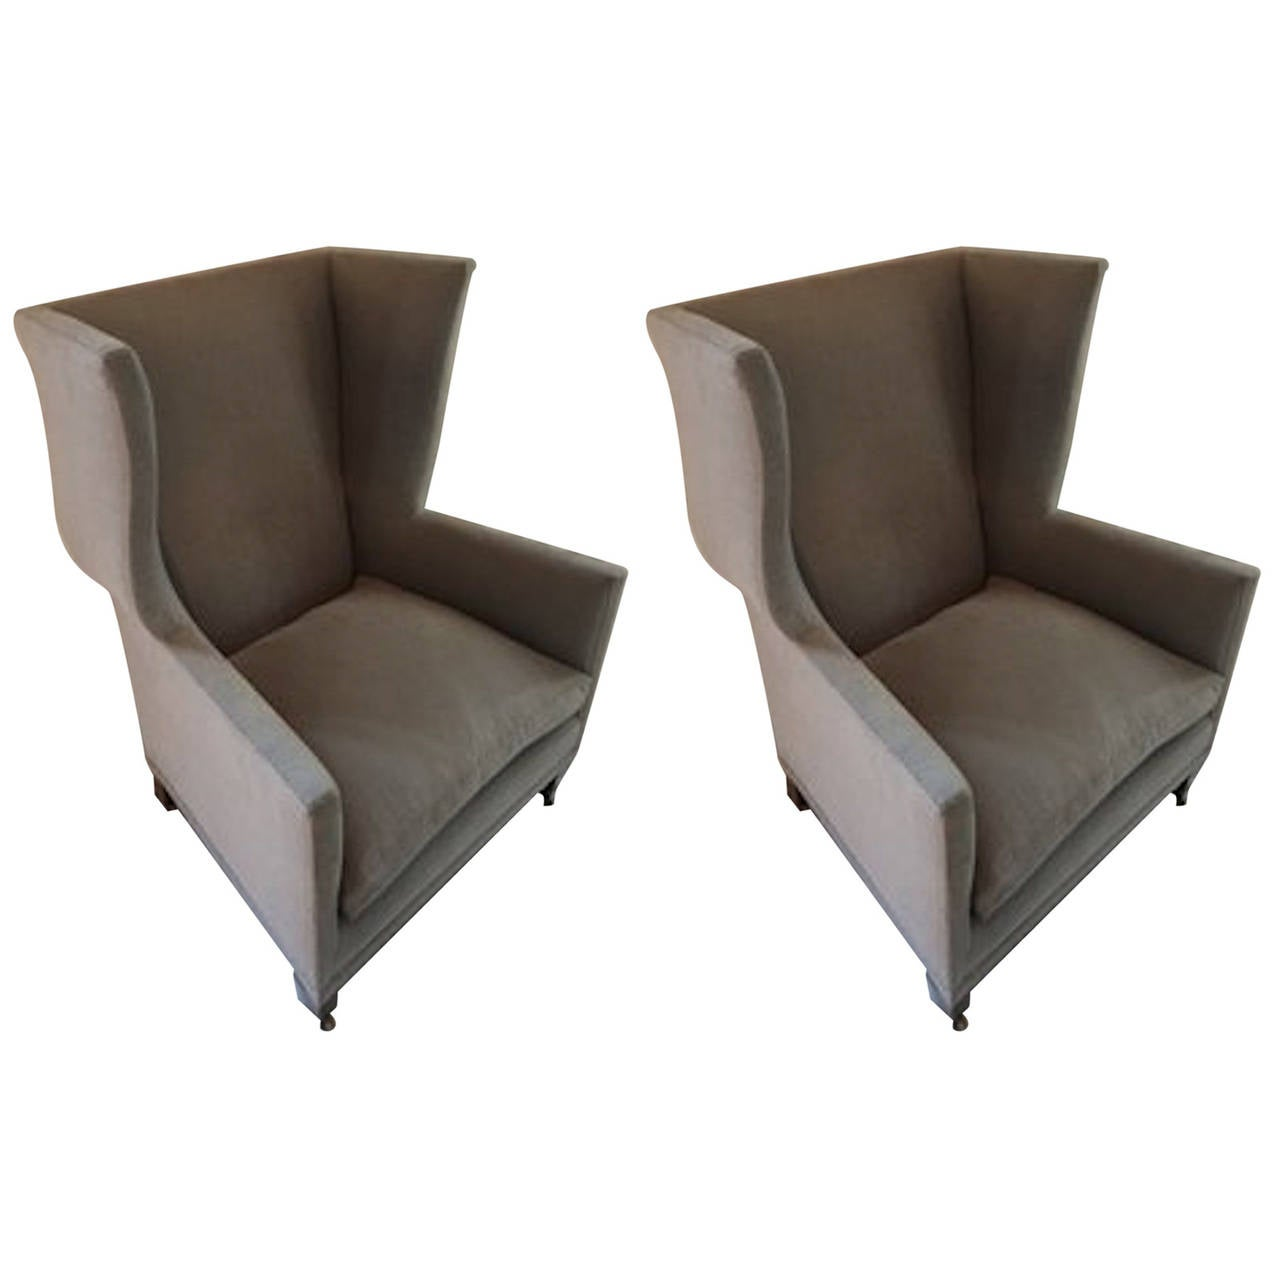 Lovely English Style Upholstered Pair Of Grey Wing Back Armchairs, Contemporary 1